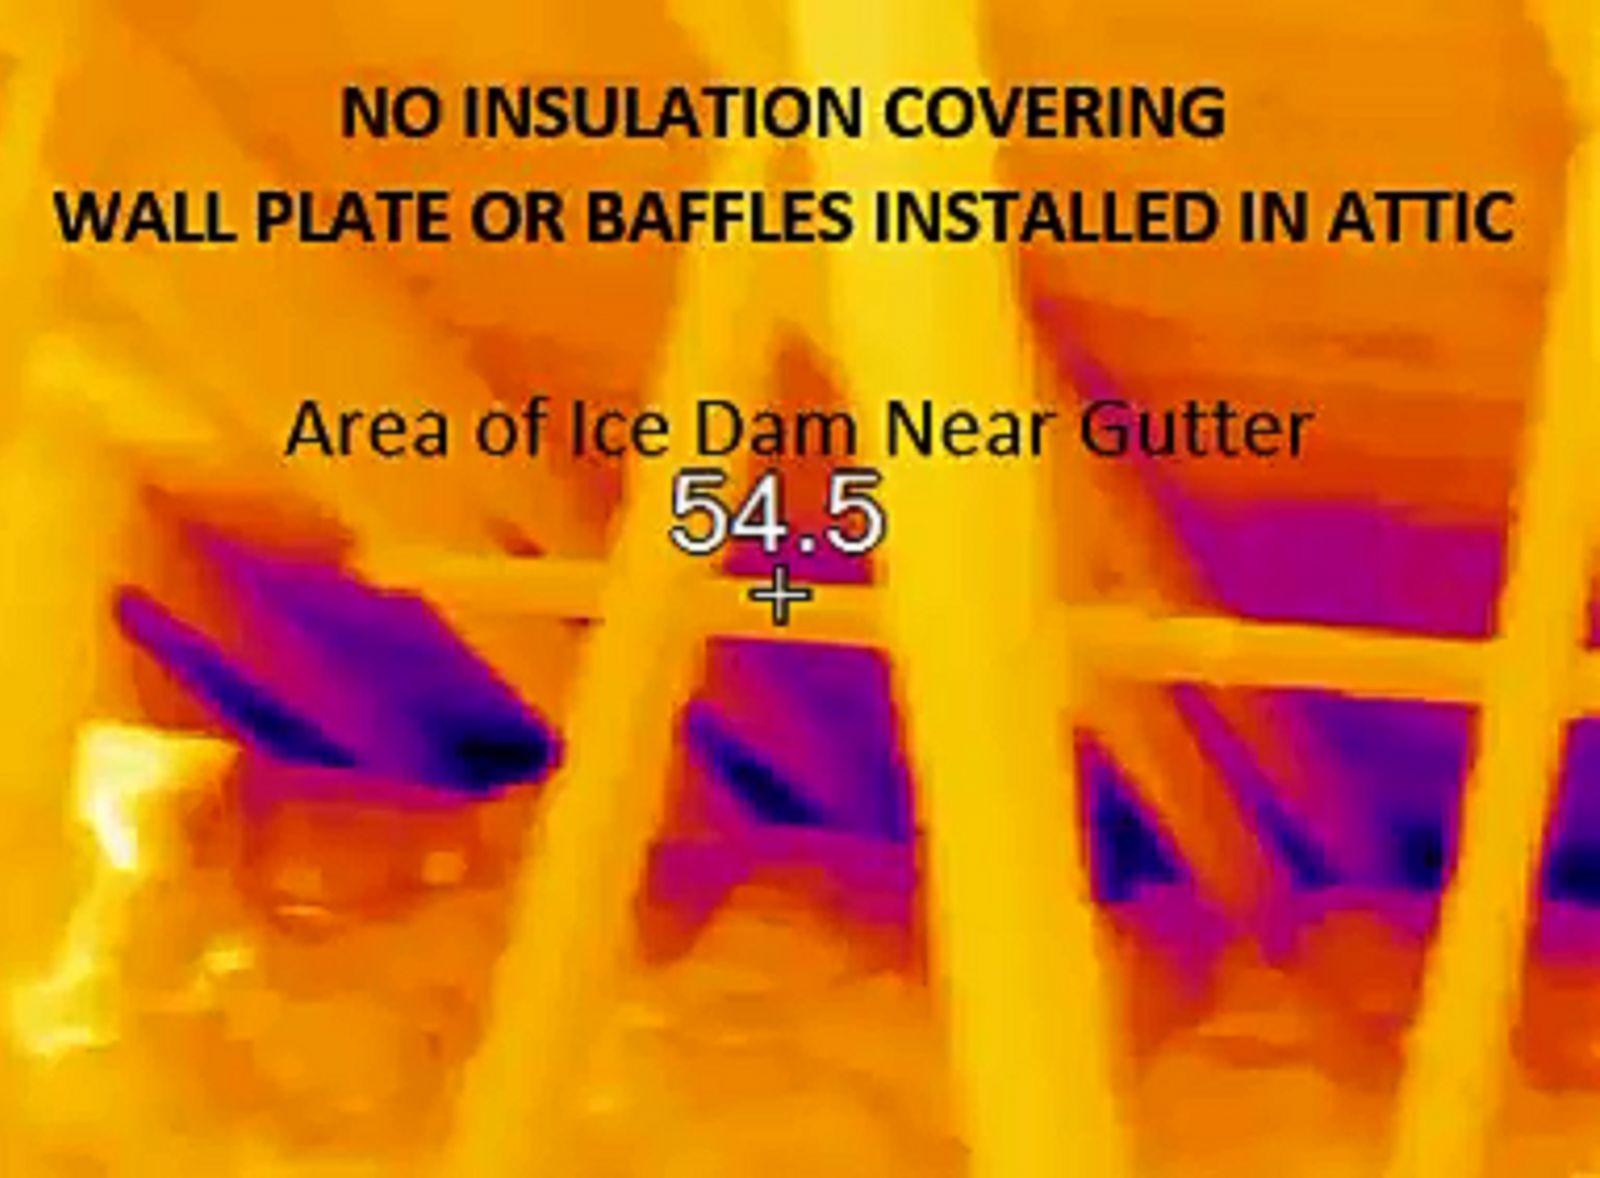 No insulation covering wall plate or wind baffles installed